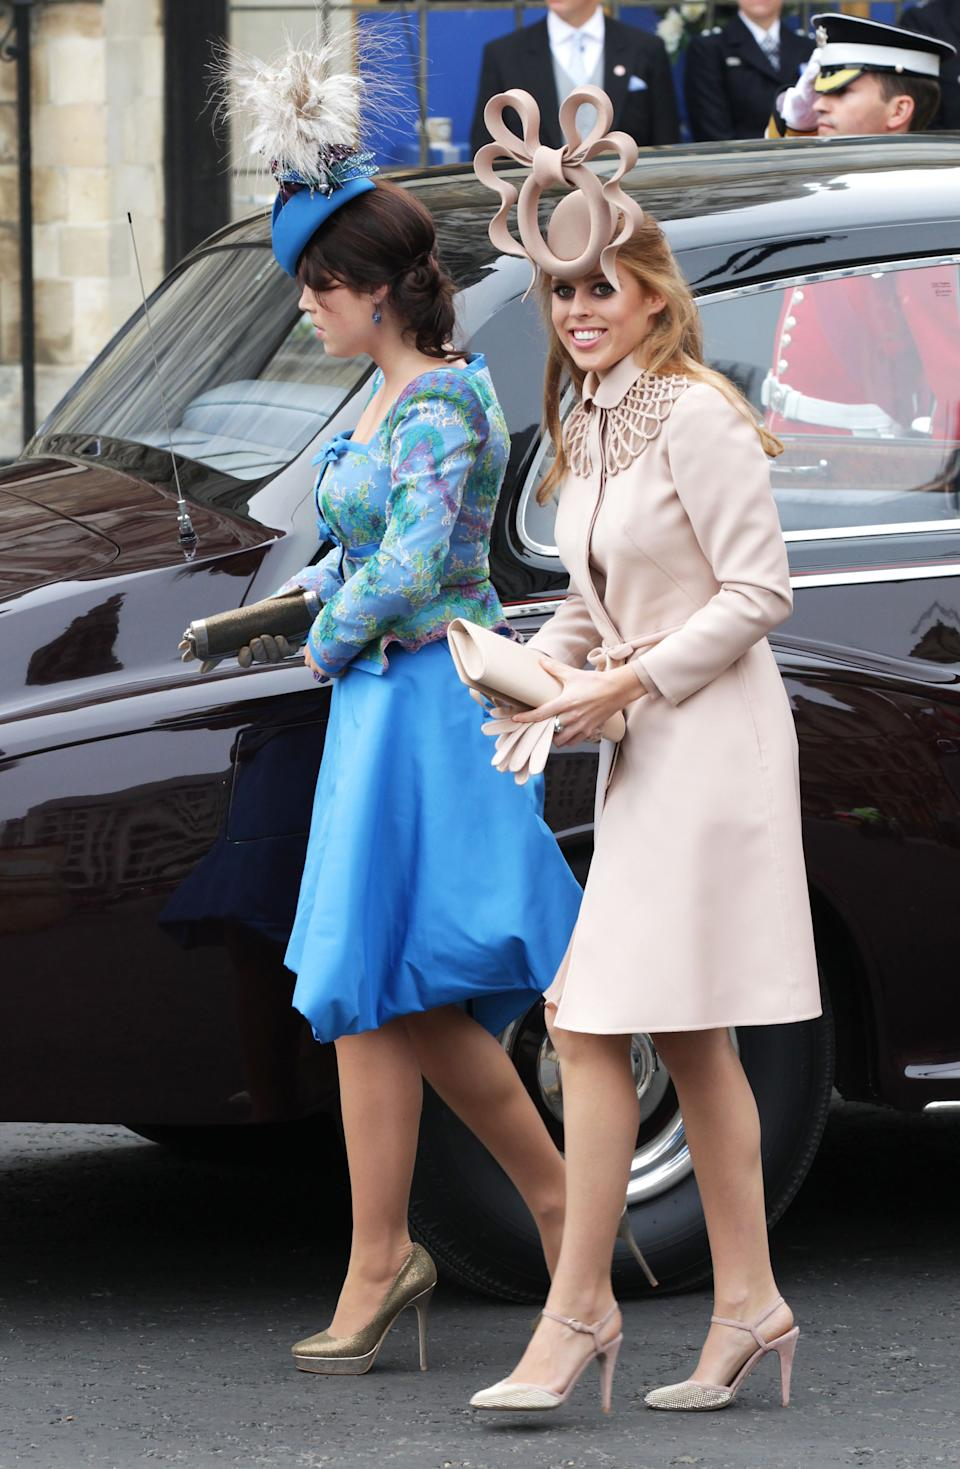 Princess Beatrice and Princess Eugenie attend Wills and Kate's royal wedding in famously bad fascinators and dresses